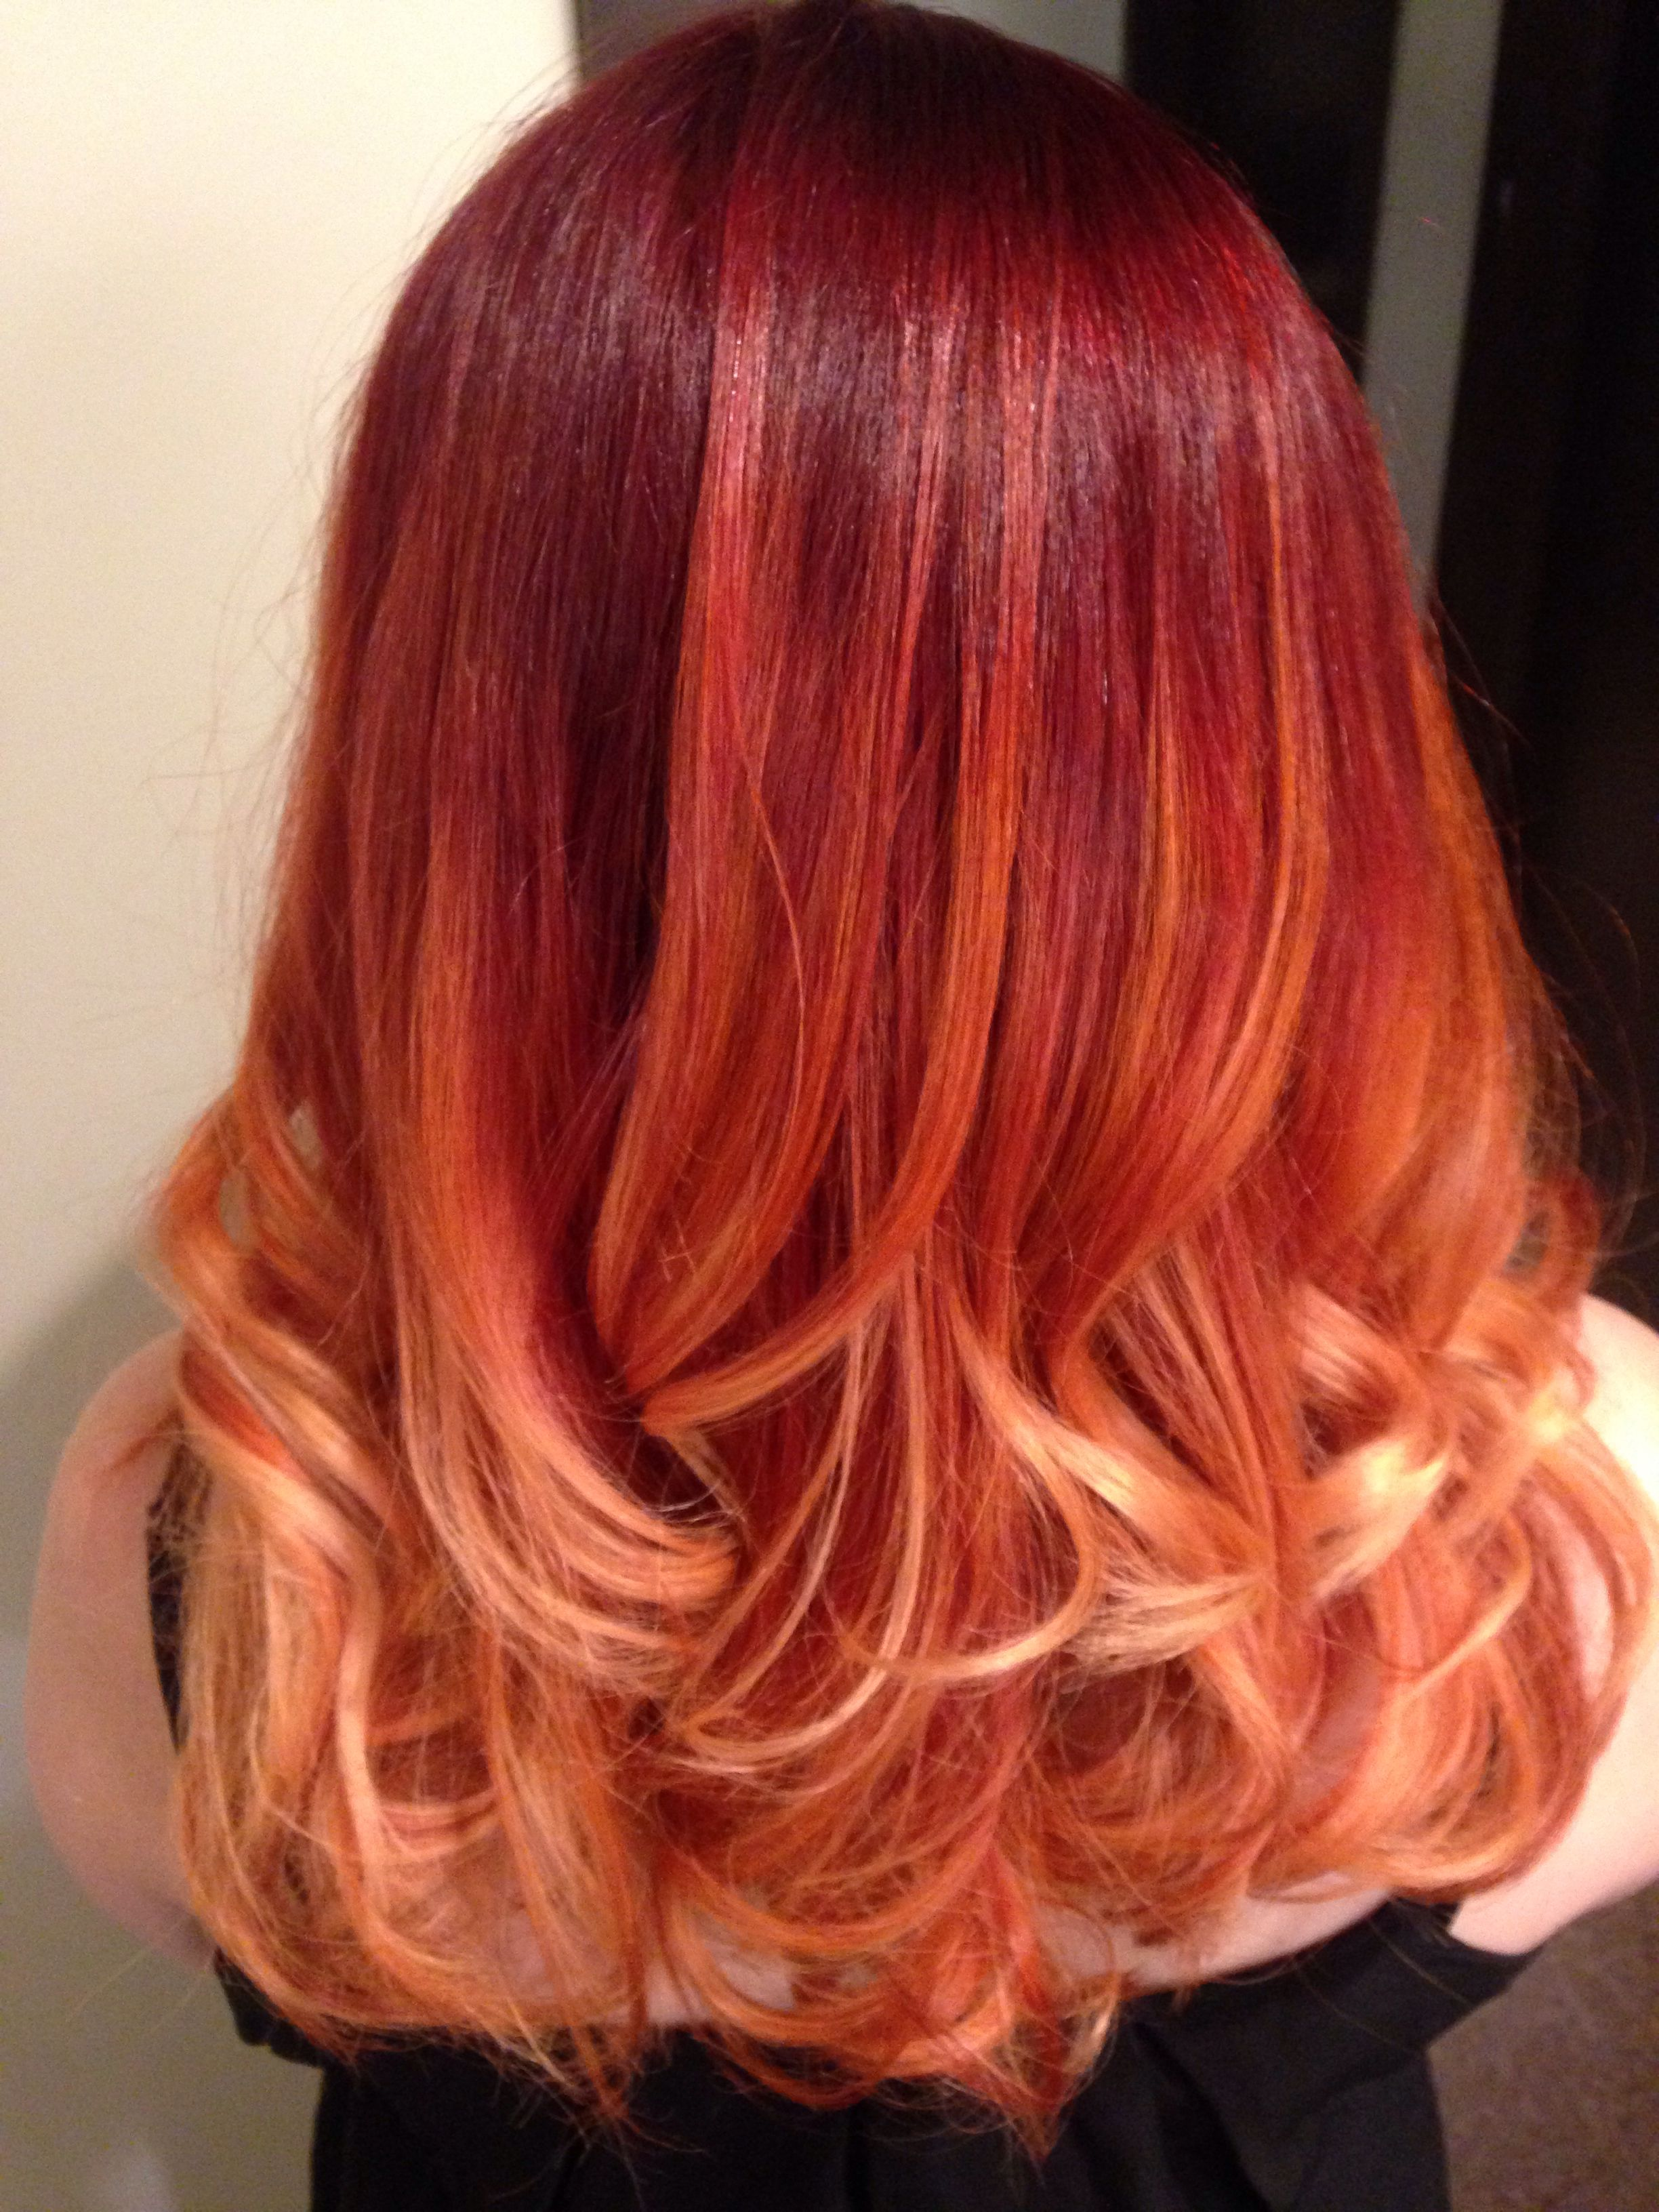 Red Ombre Medium Length Hair Done With Aveda Color Red